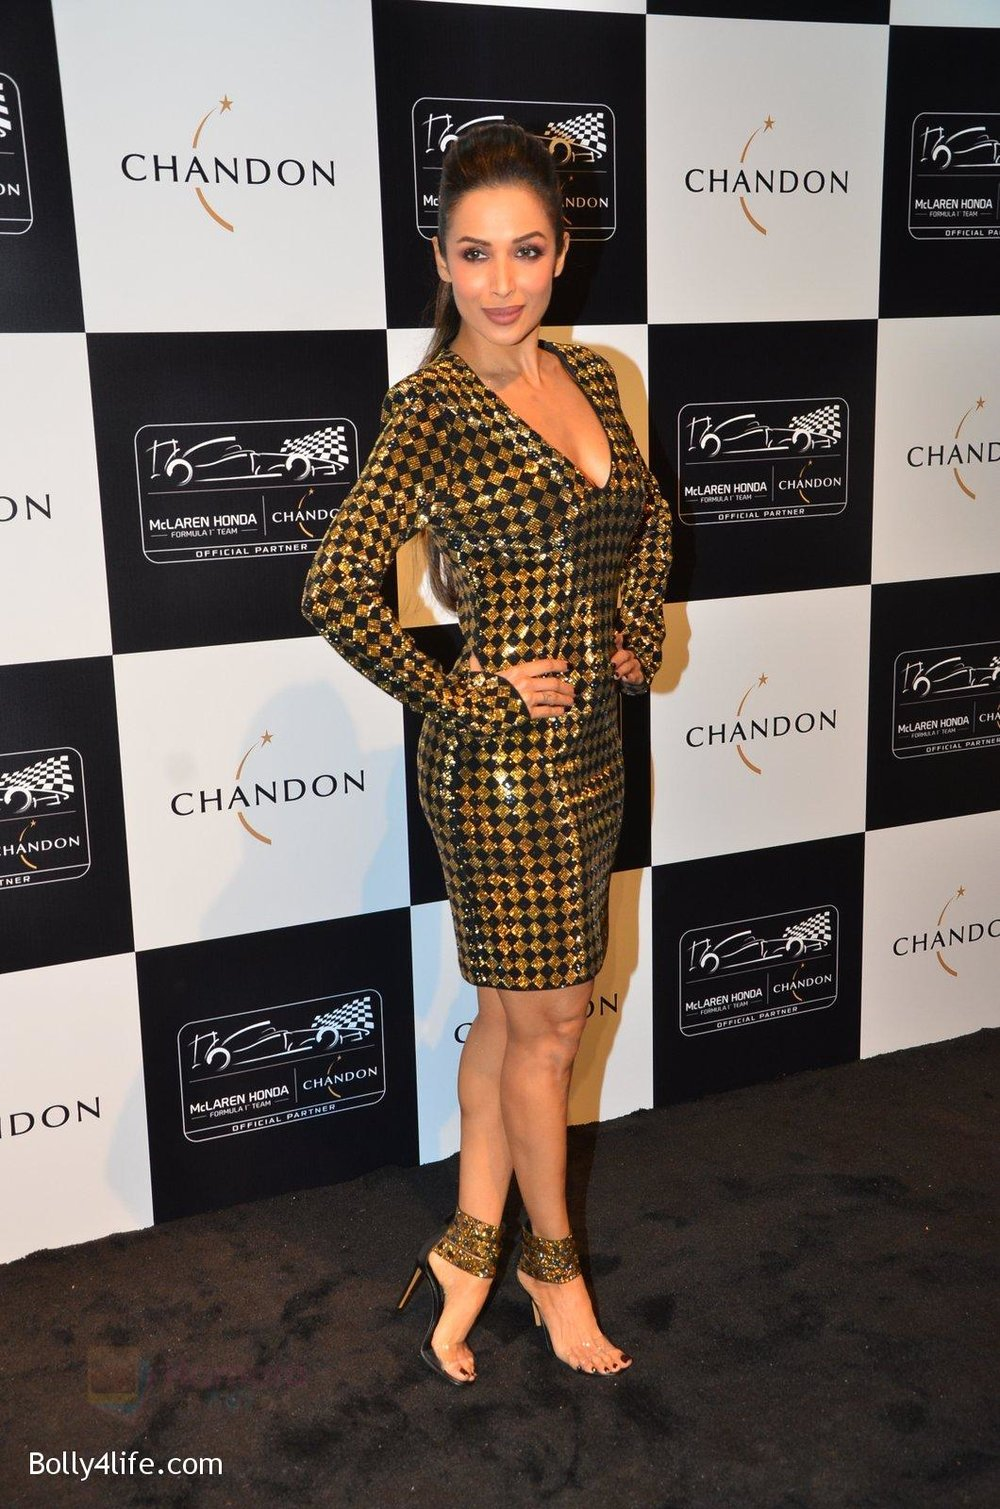 Malaika-Arora-Khan-at-the-unveiling-Chandon-X-McLaren-Honda-installation-in-Mumbai-on-9th-Sept-2016-27.jpg